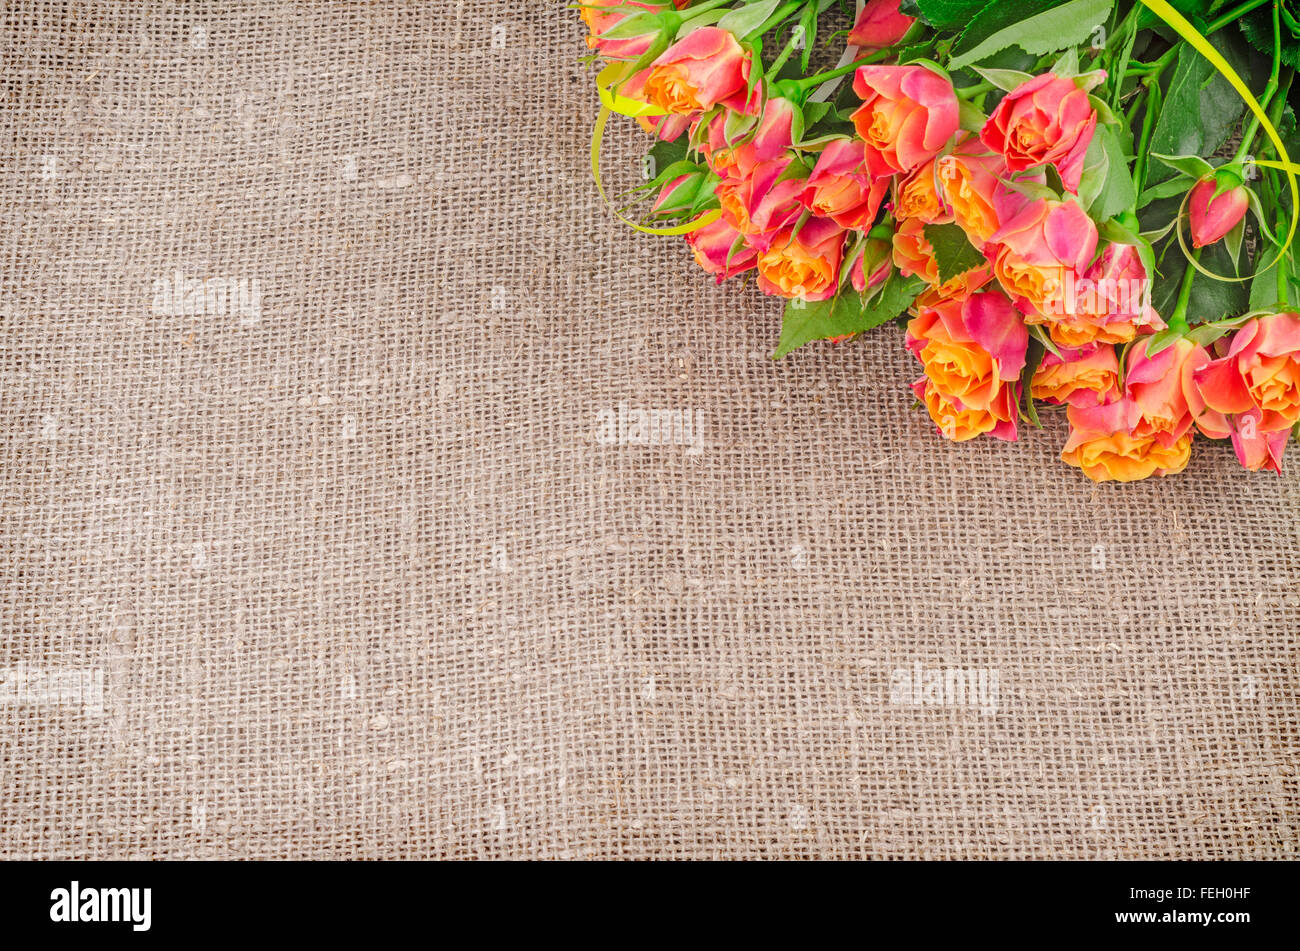 Rustic Floral Background Stock Photos Rustic Floral Background